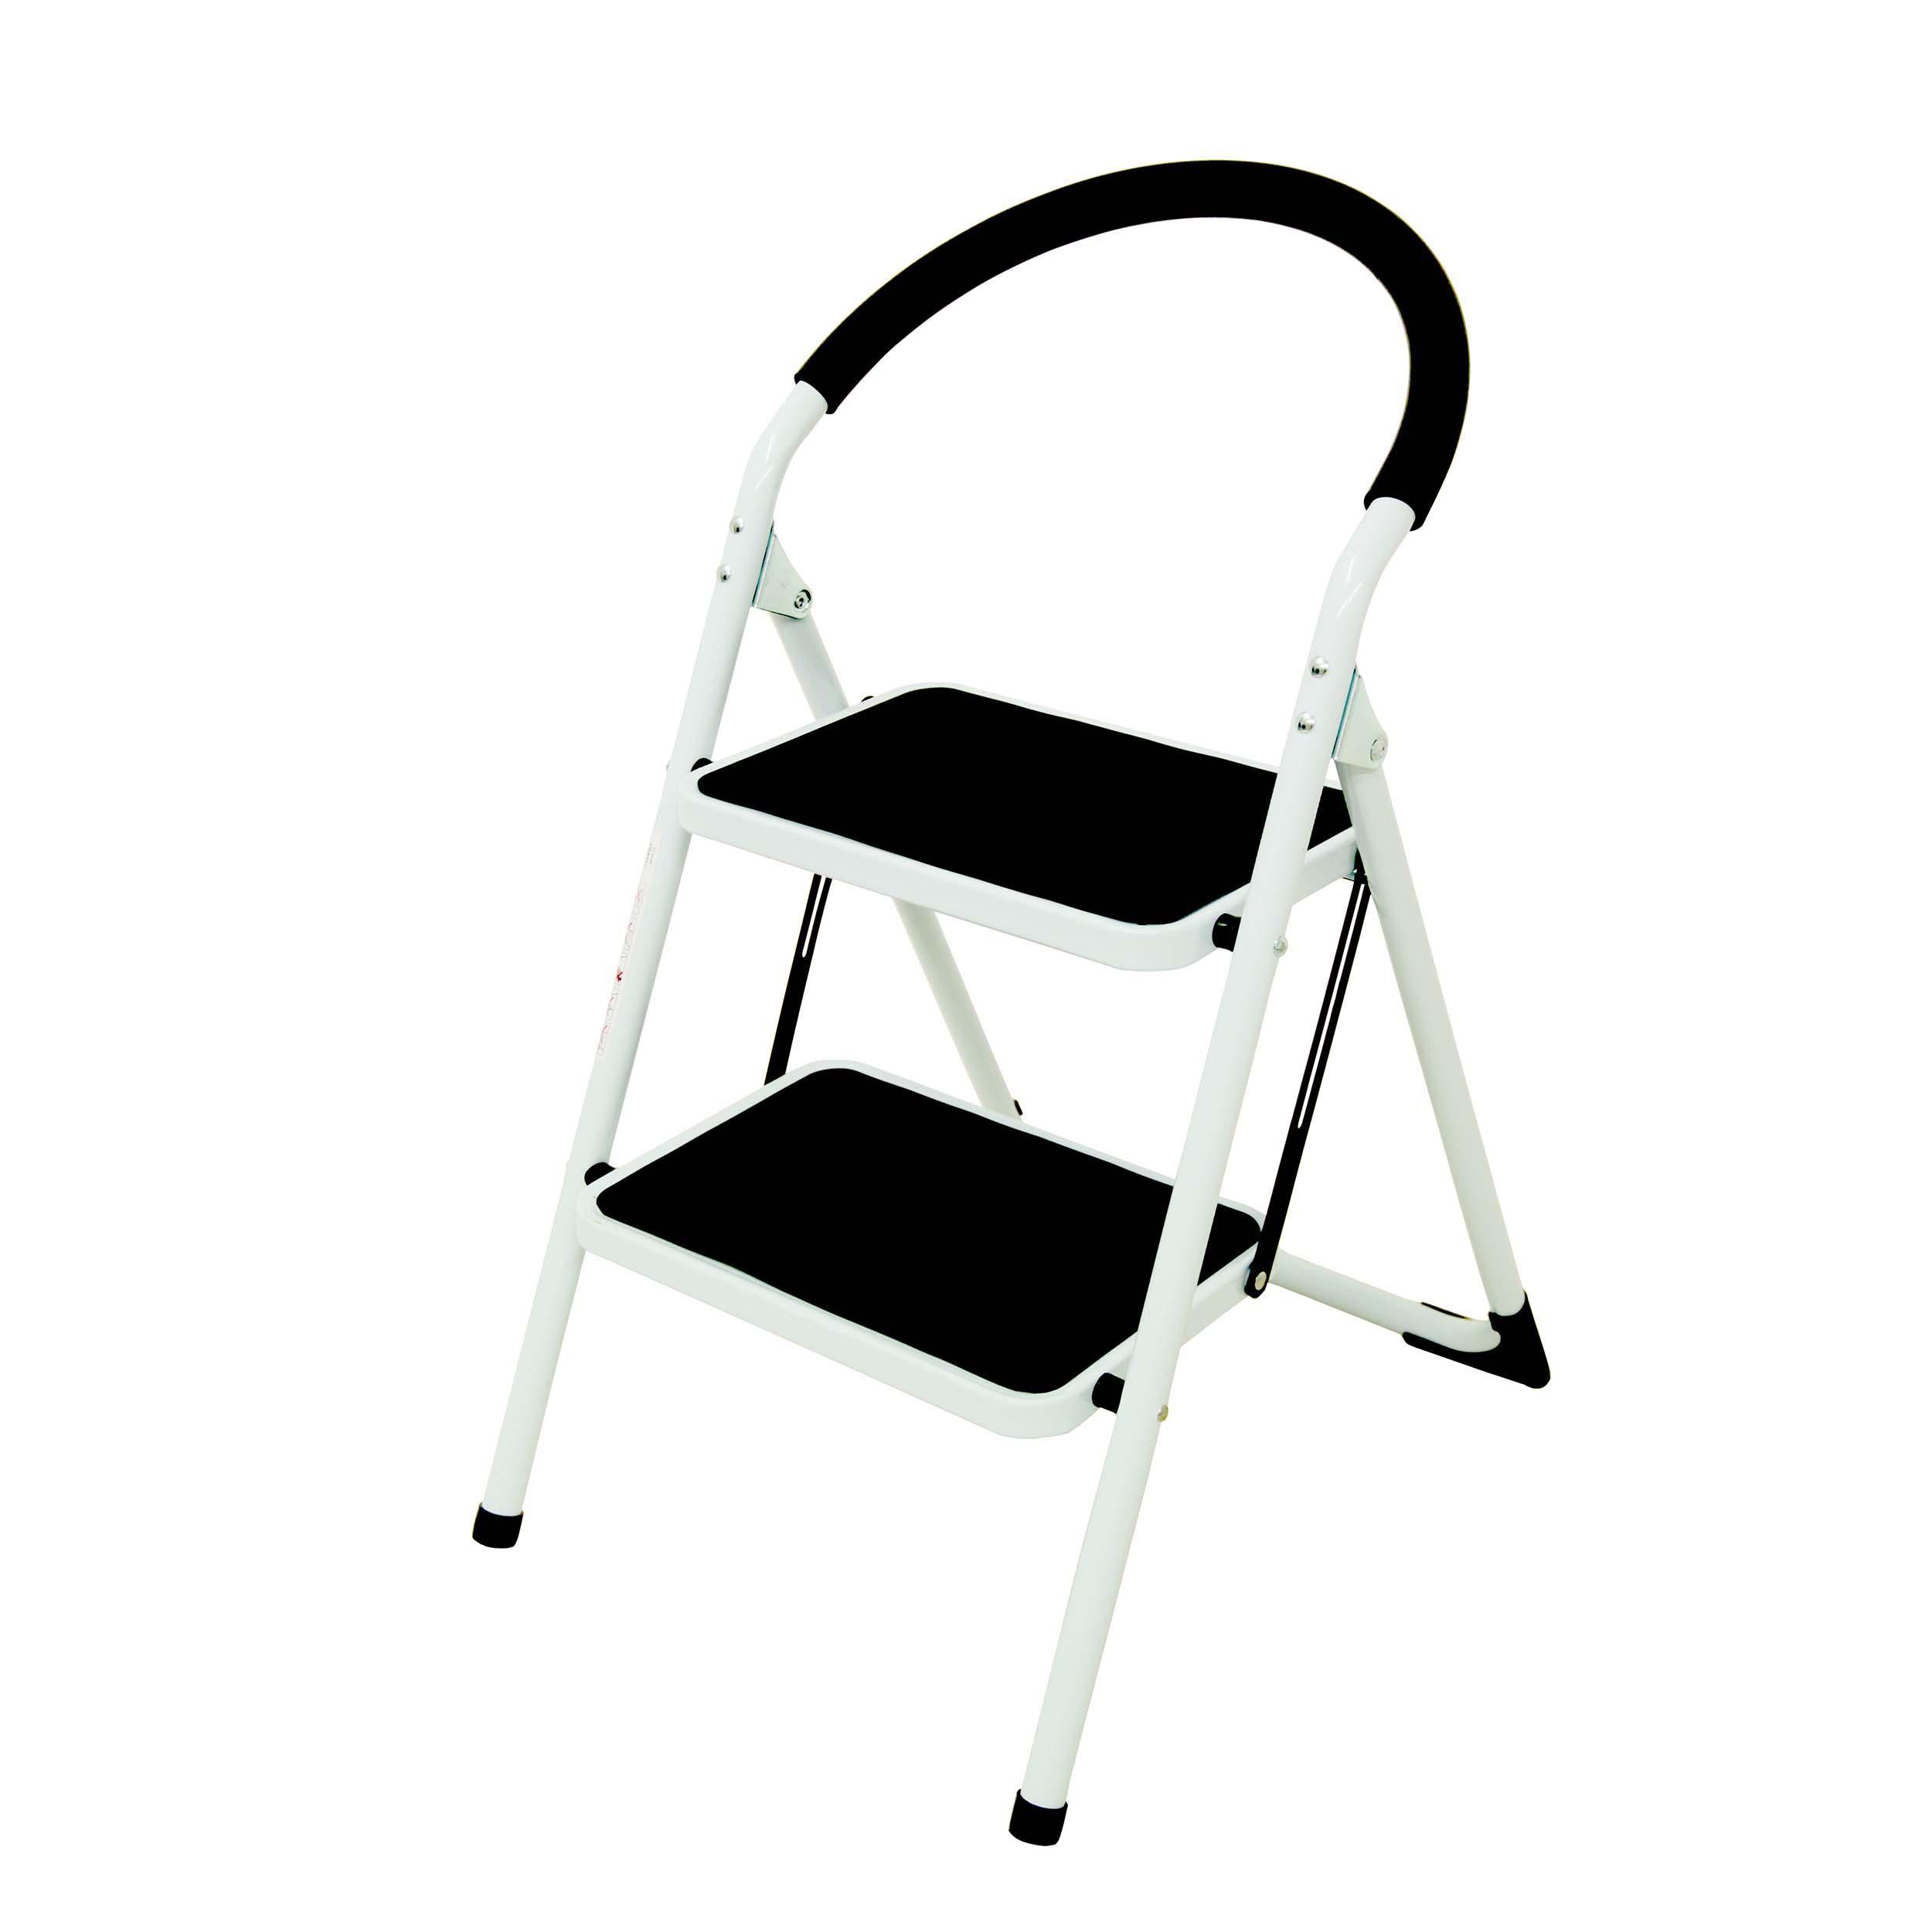 Step stool Folding Step Ladder 2 Tread Capacity 150kg White Frame